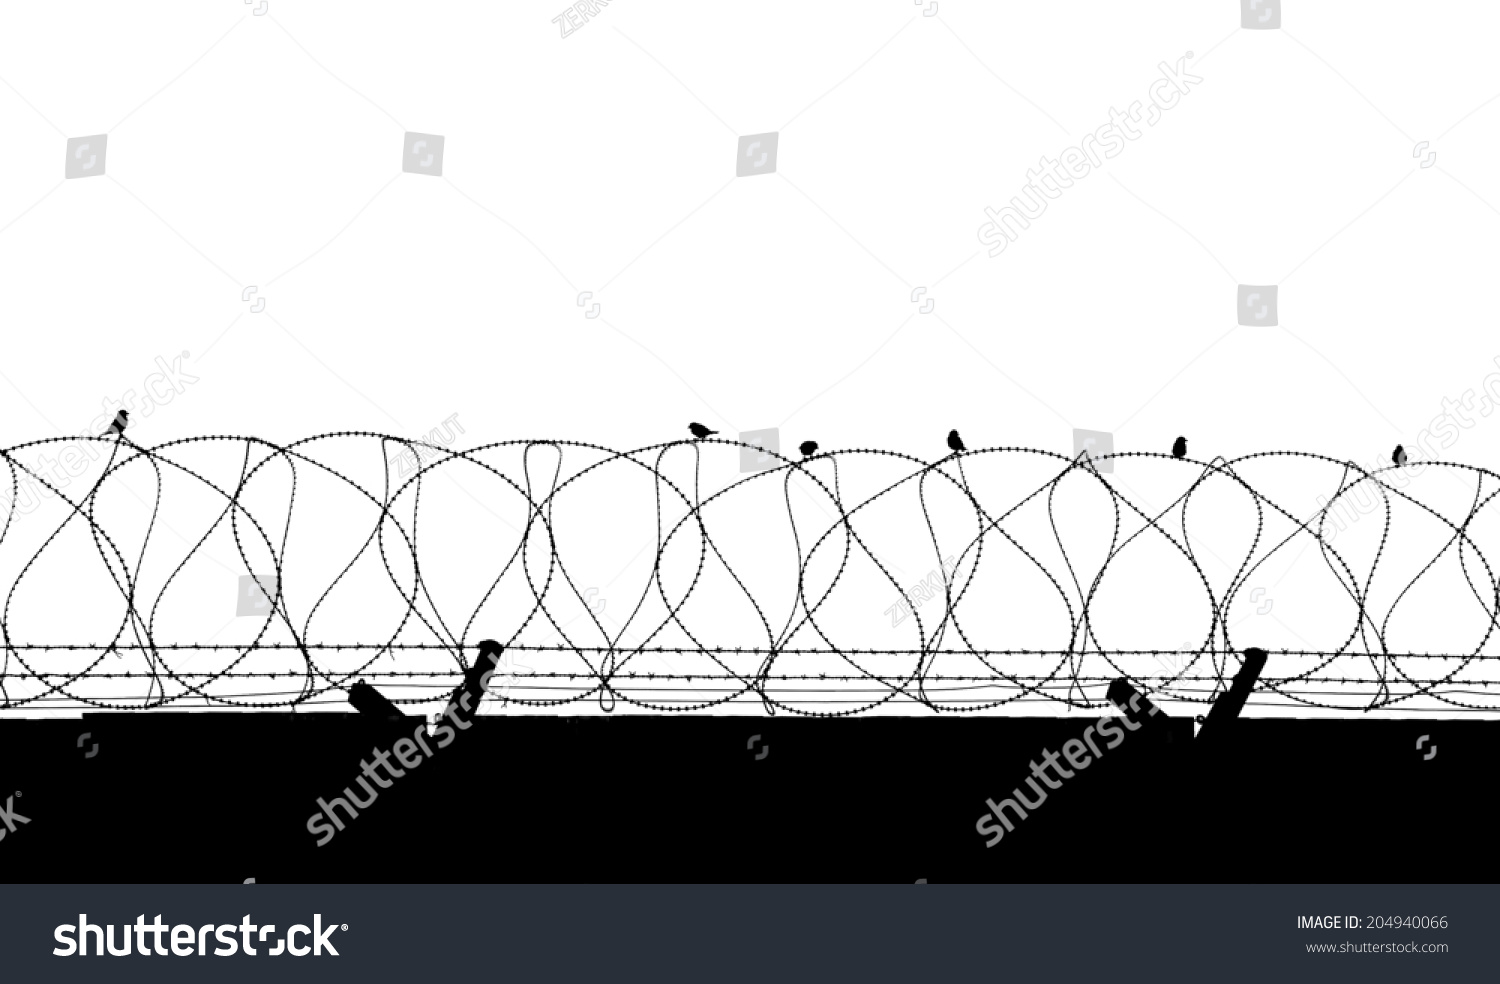 Bird On Barbed Wire Isolated On Stock Photo 204940066 - Shutterstock